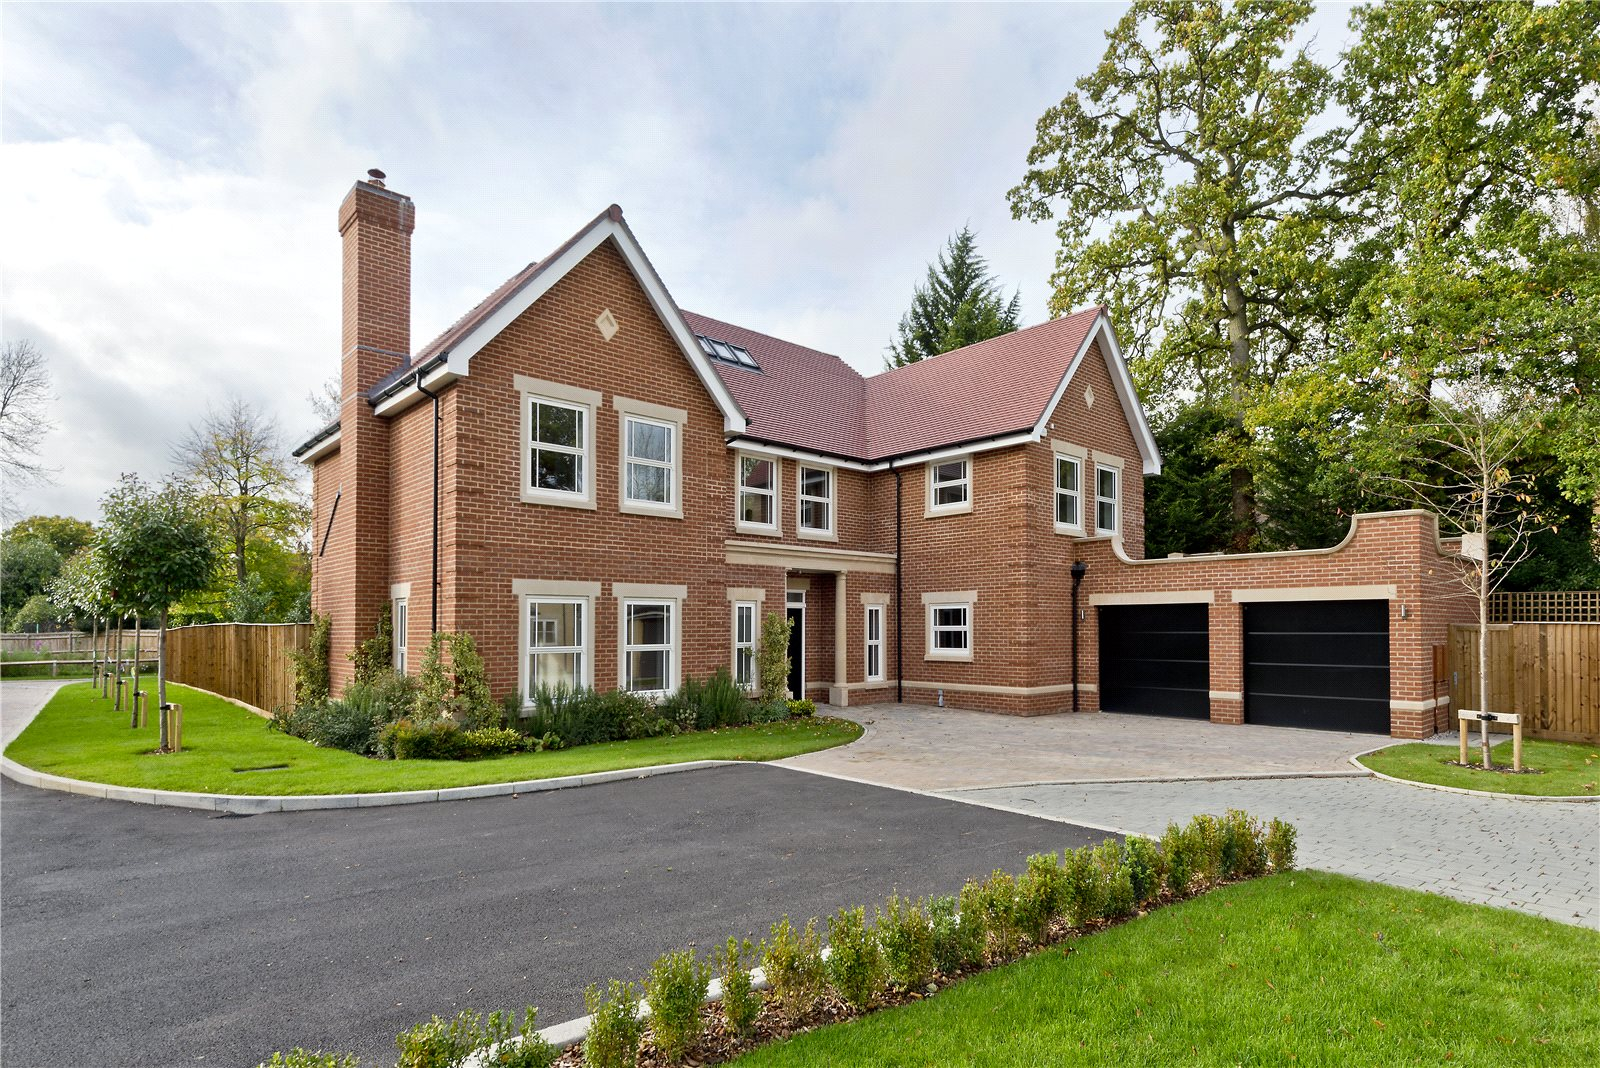 Casa Unifamiliar por un Venta en Glade In The Spinney, Gerrards Cross, Buckinghamshire, SL9 Gerrards Cross, Inglaterra